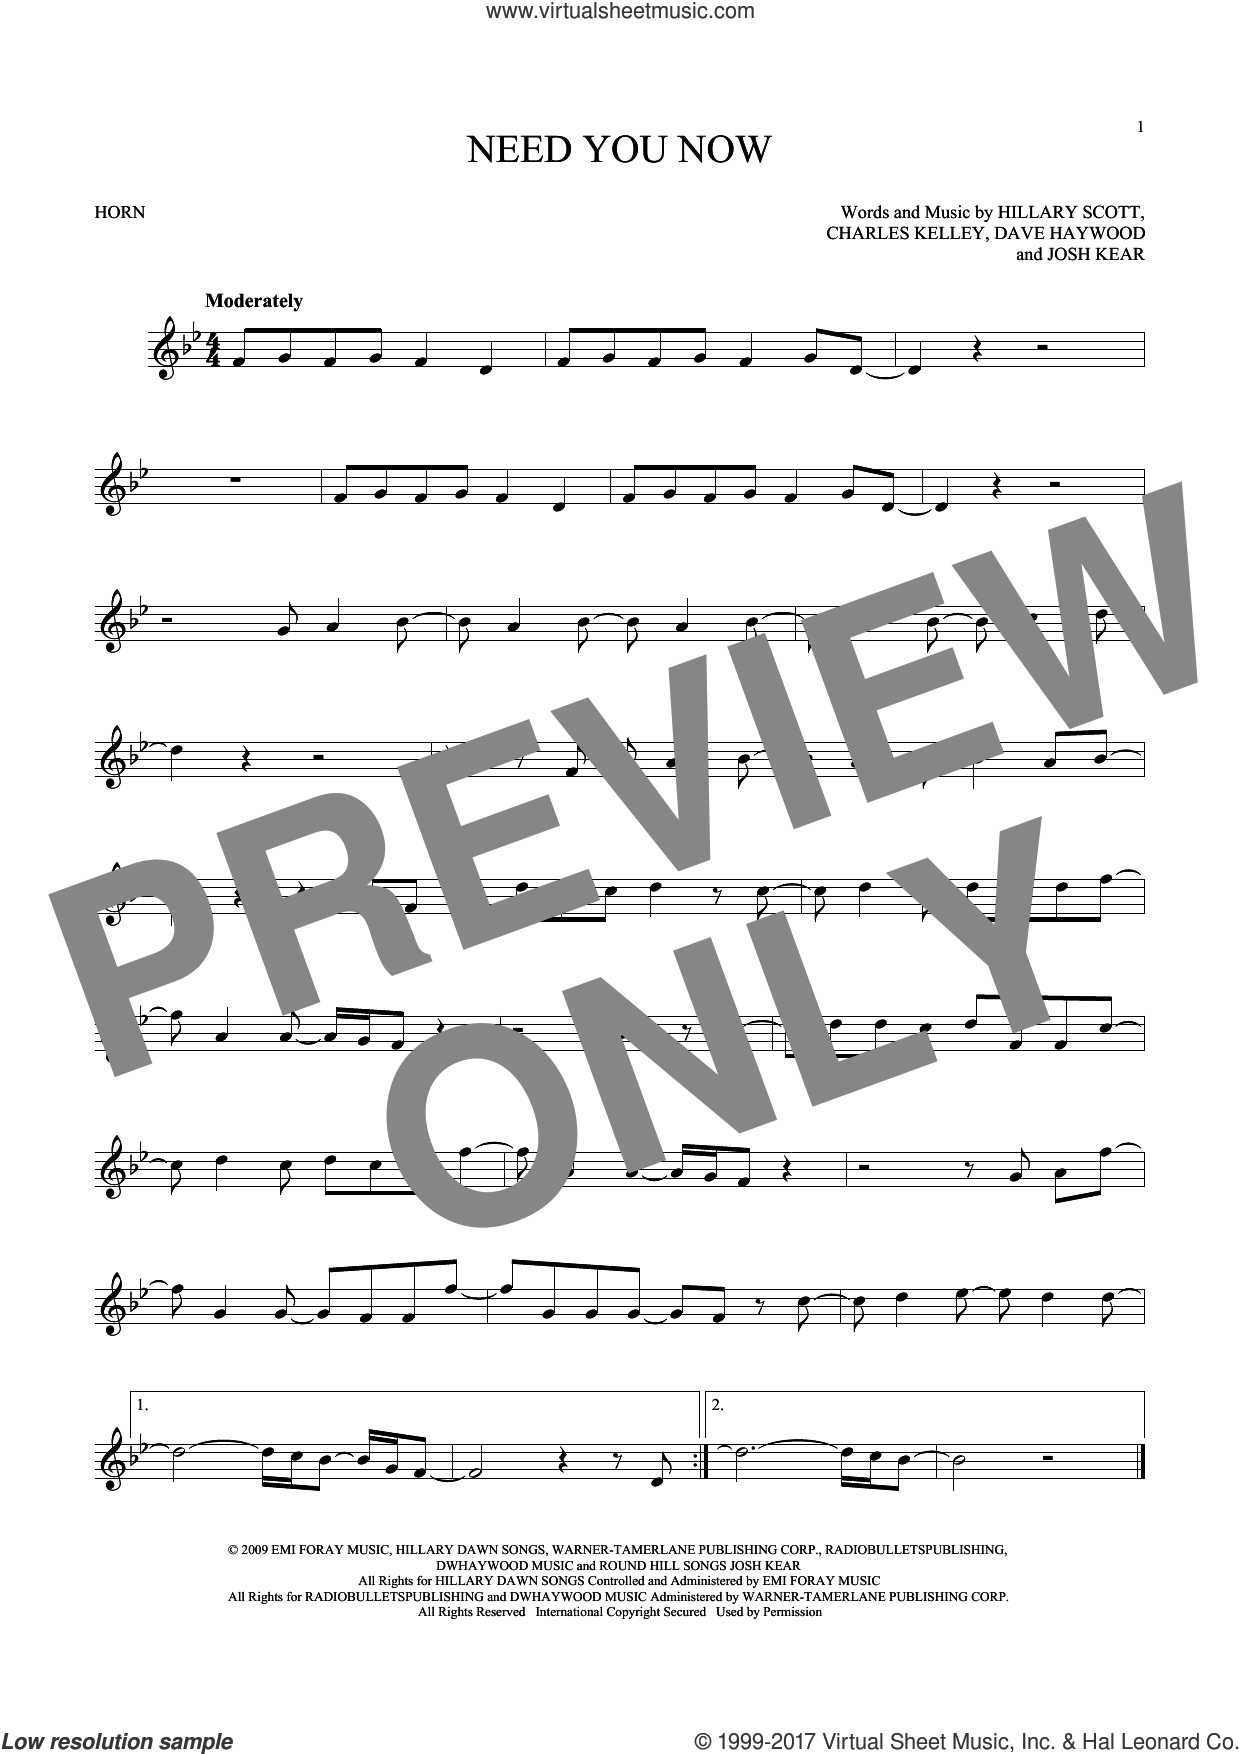 Need You Now sheet music for horn solo by Lady Antebellum, Charles Kelley, Dave Haywood, Hillary Scott and Josh Kear. Score Image Preview.